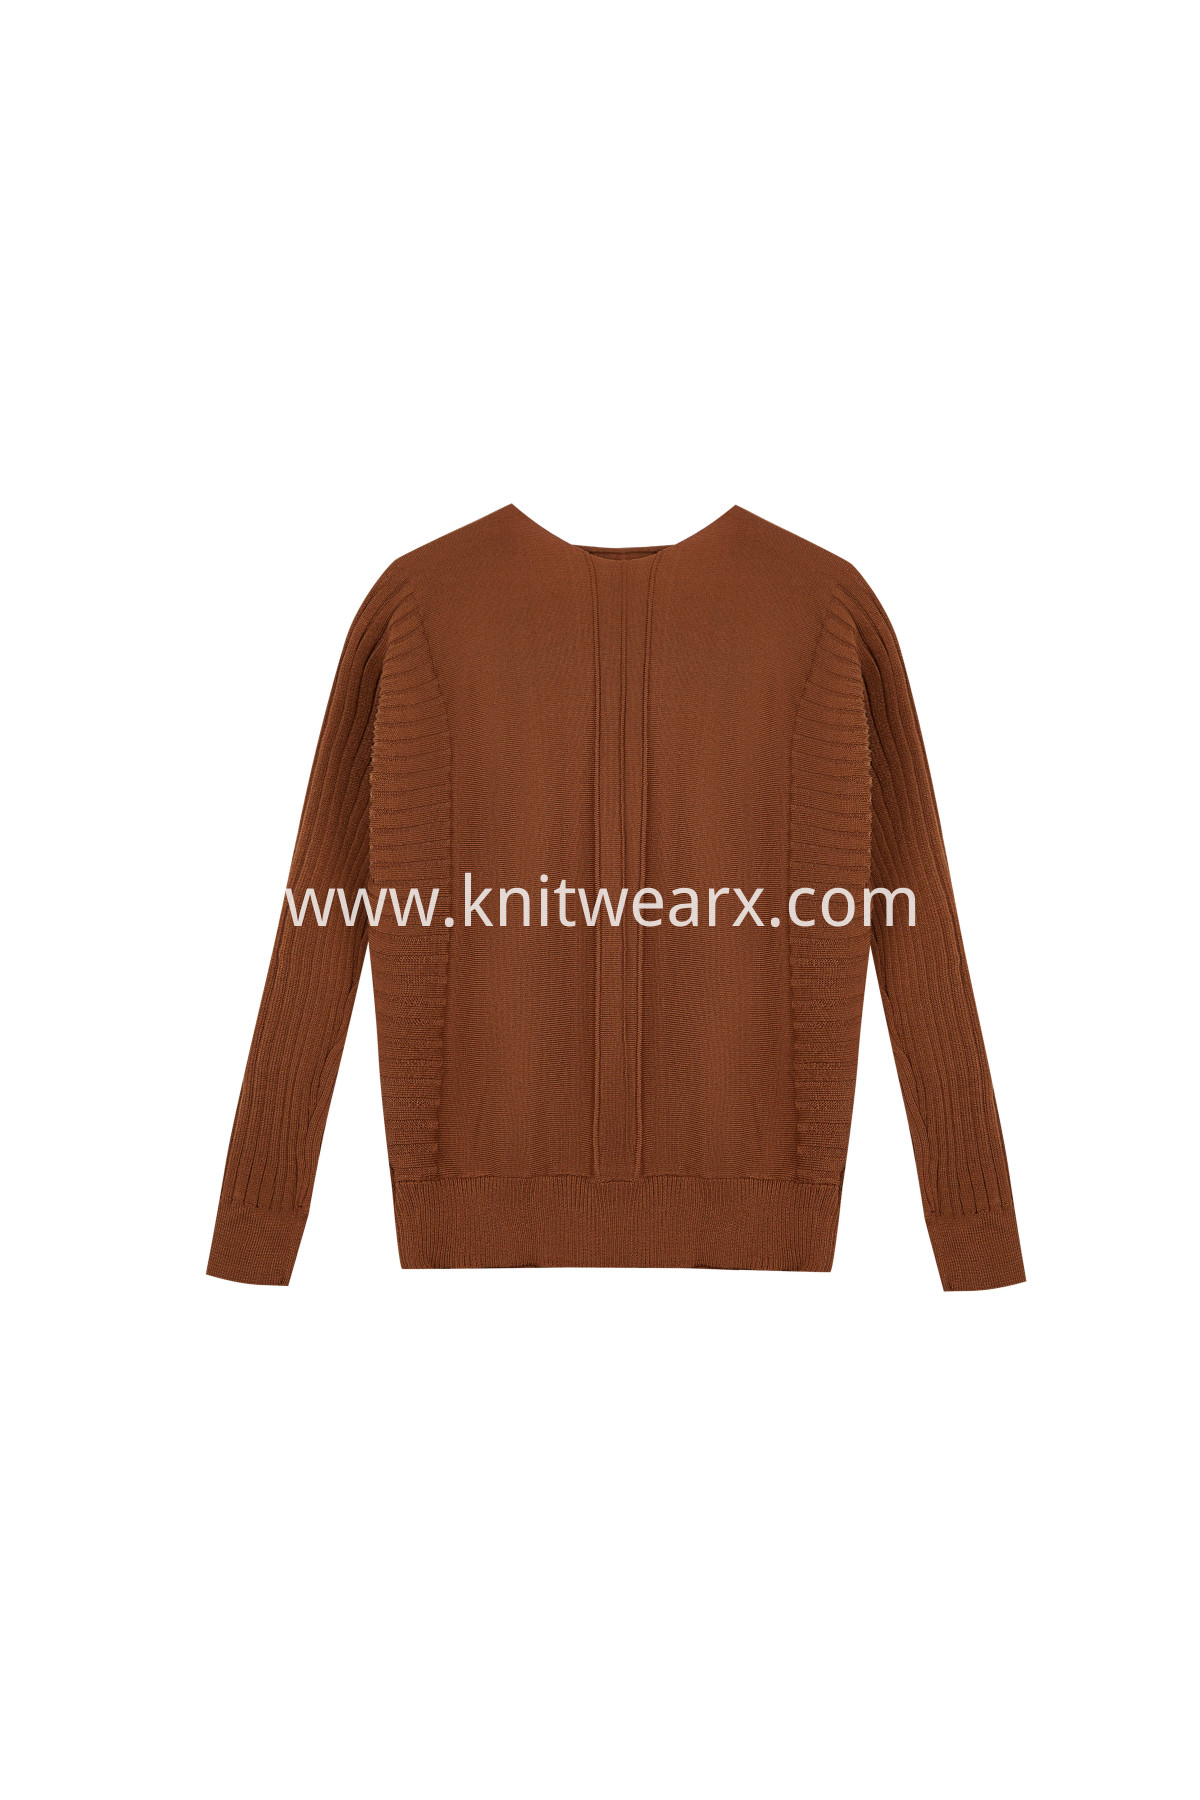 Women's Boat Neck Batwing Rib Sleeve knitted Pullover